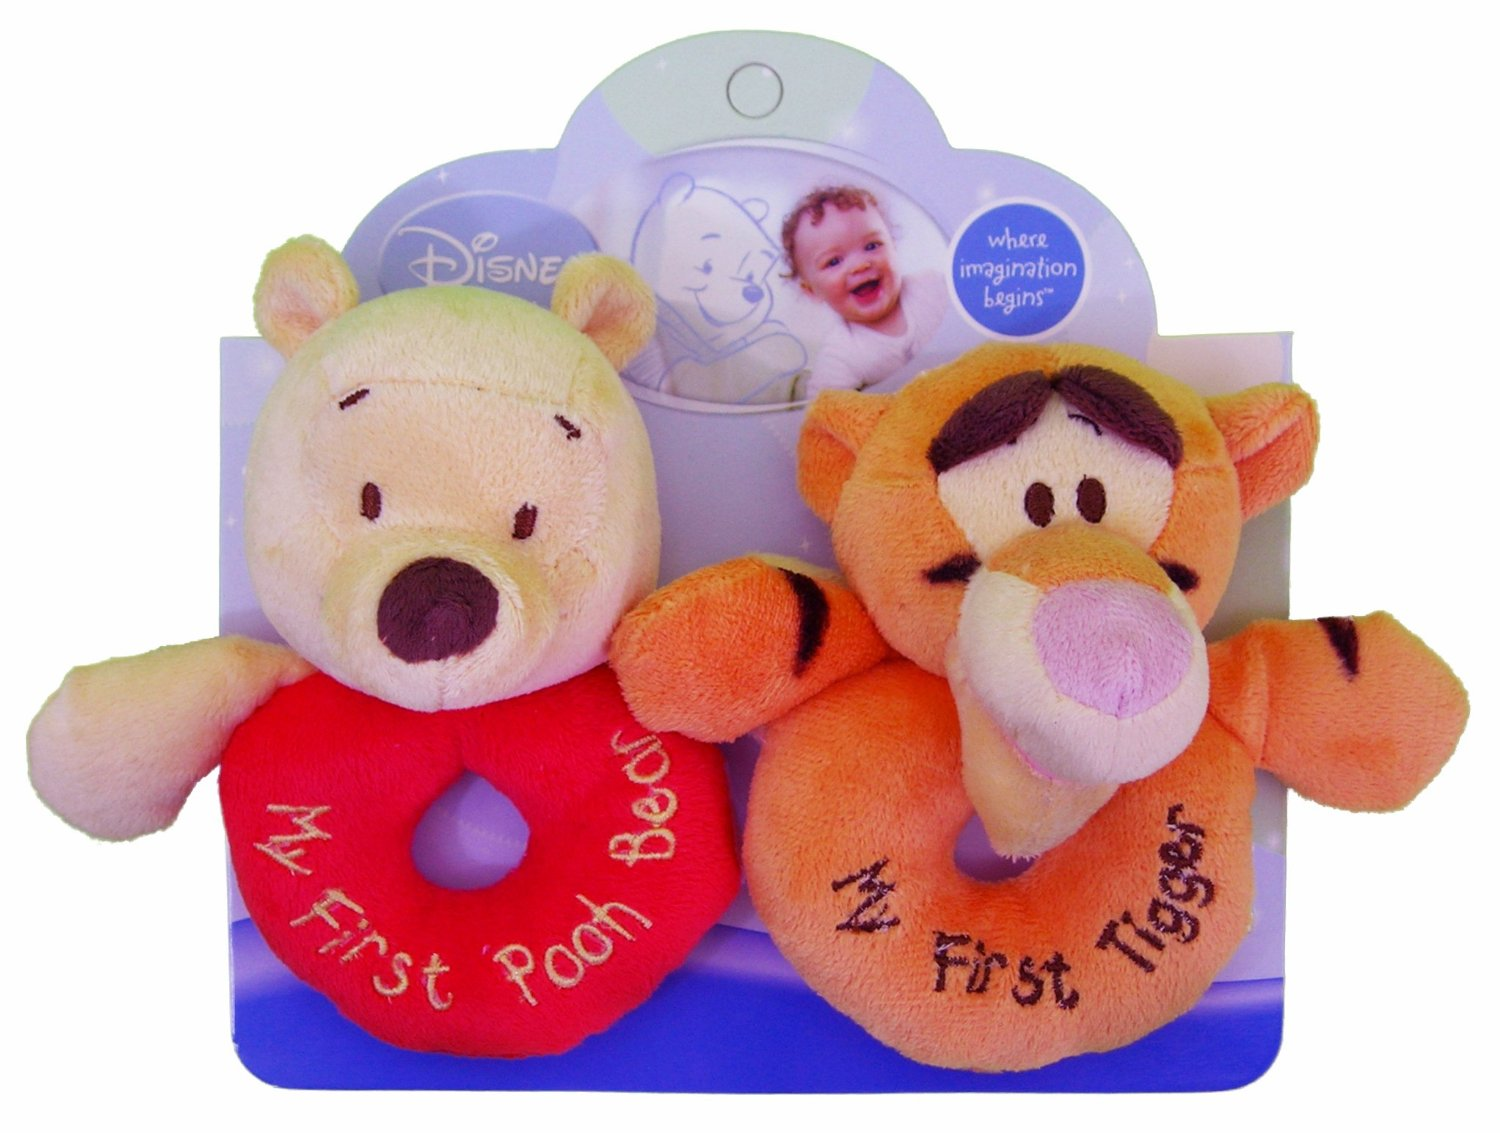 Kids Preferred Disney Baby, Plush Ring Rattles - Winnie the Pooh and Tigger